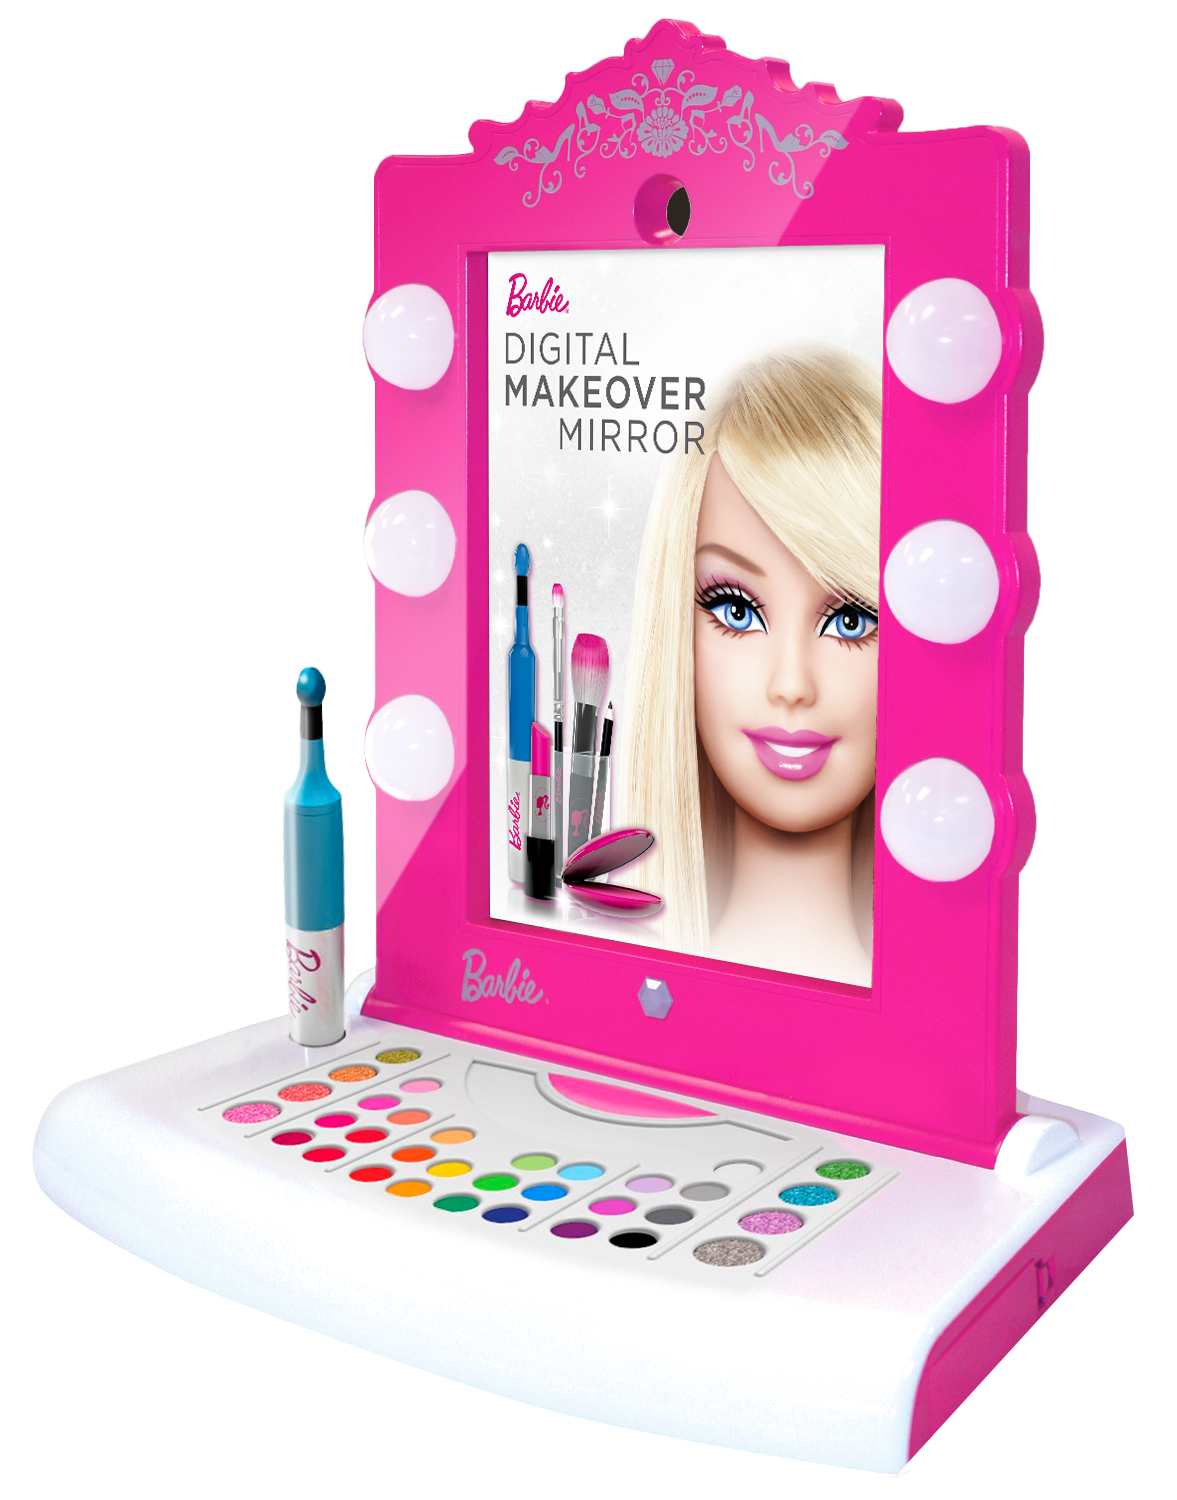 Barbie Vanity Light Up Mirror : THE FIRE WIRE 2013 Holiday Must-Have List: Toys